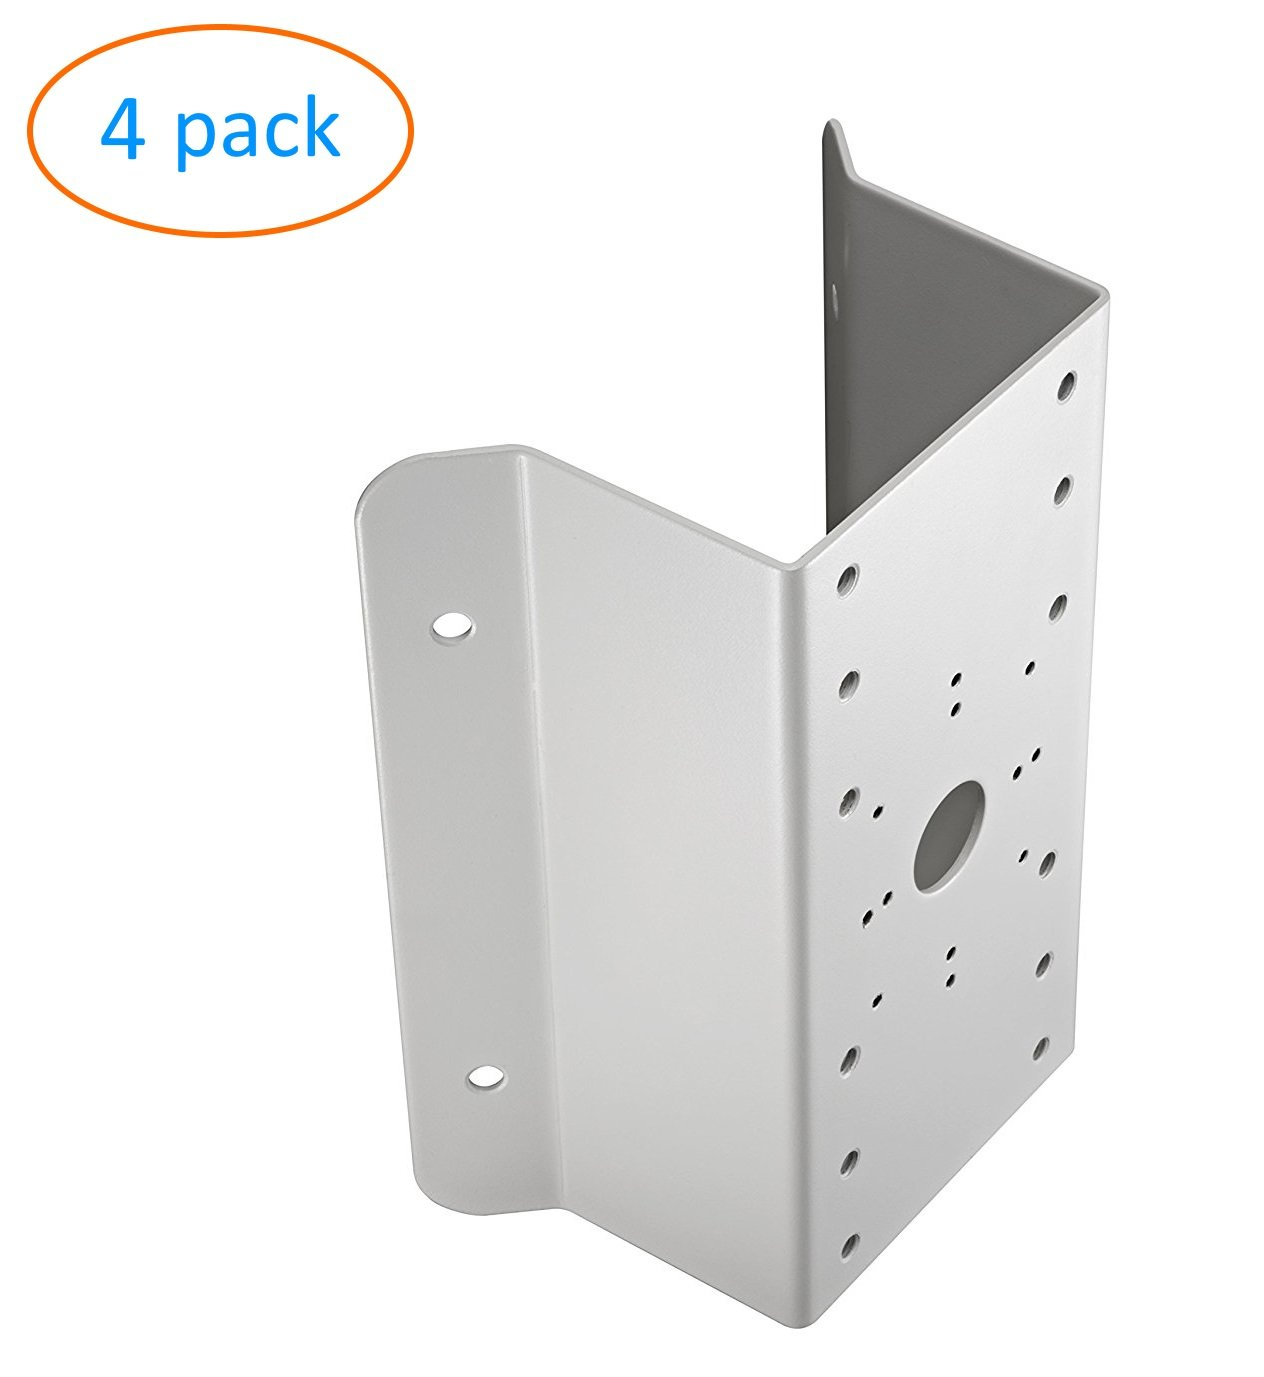 cm DS-1276ZJ Universal Corner Bracket for Most Hikvision Wall Mounts and Cameras - 4 Pack